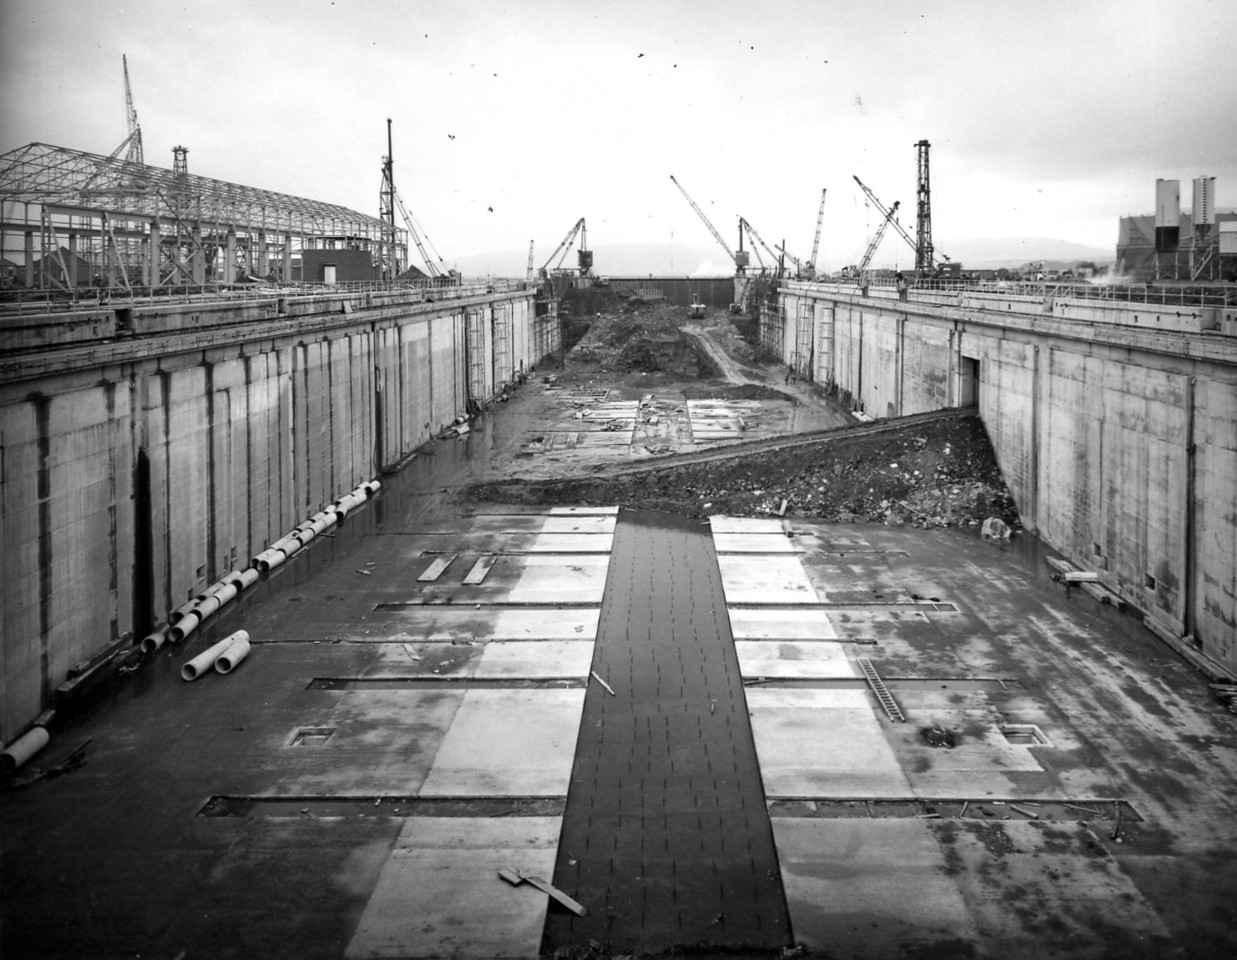 D105	General view along centreline of dock - 1/10/1963